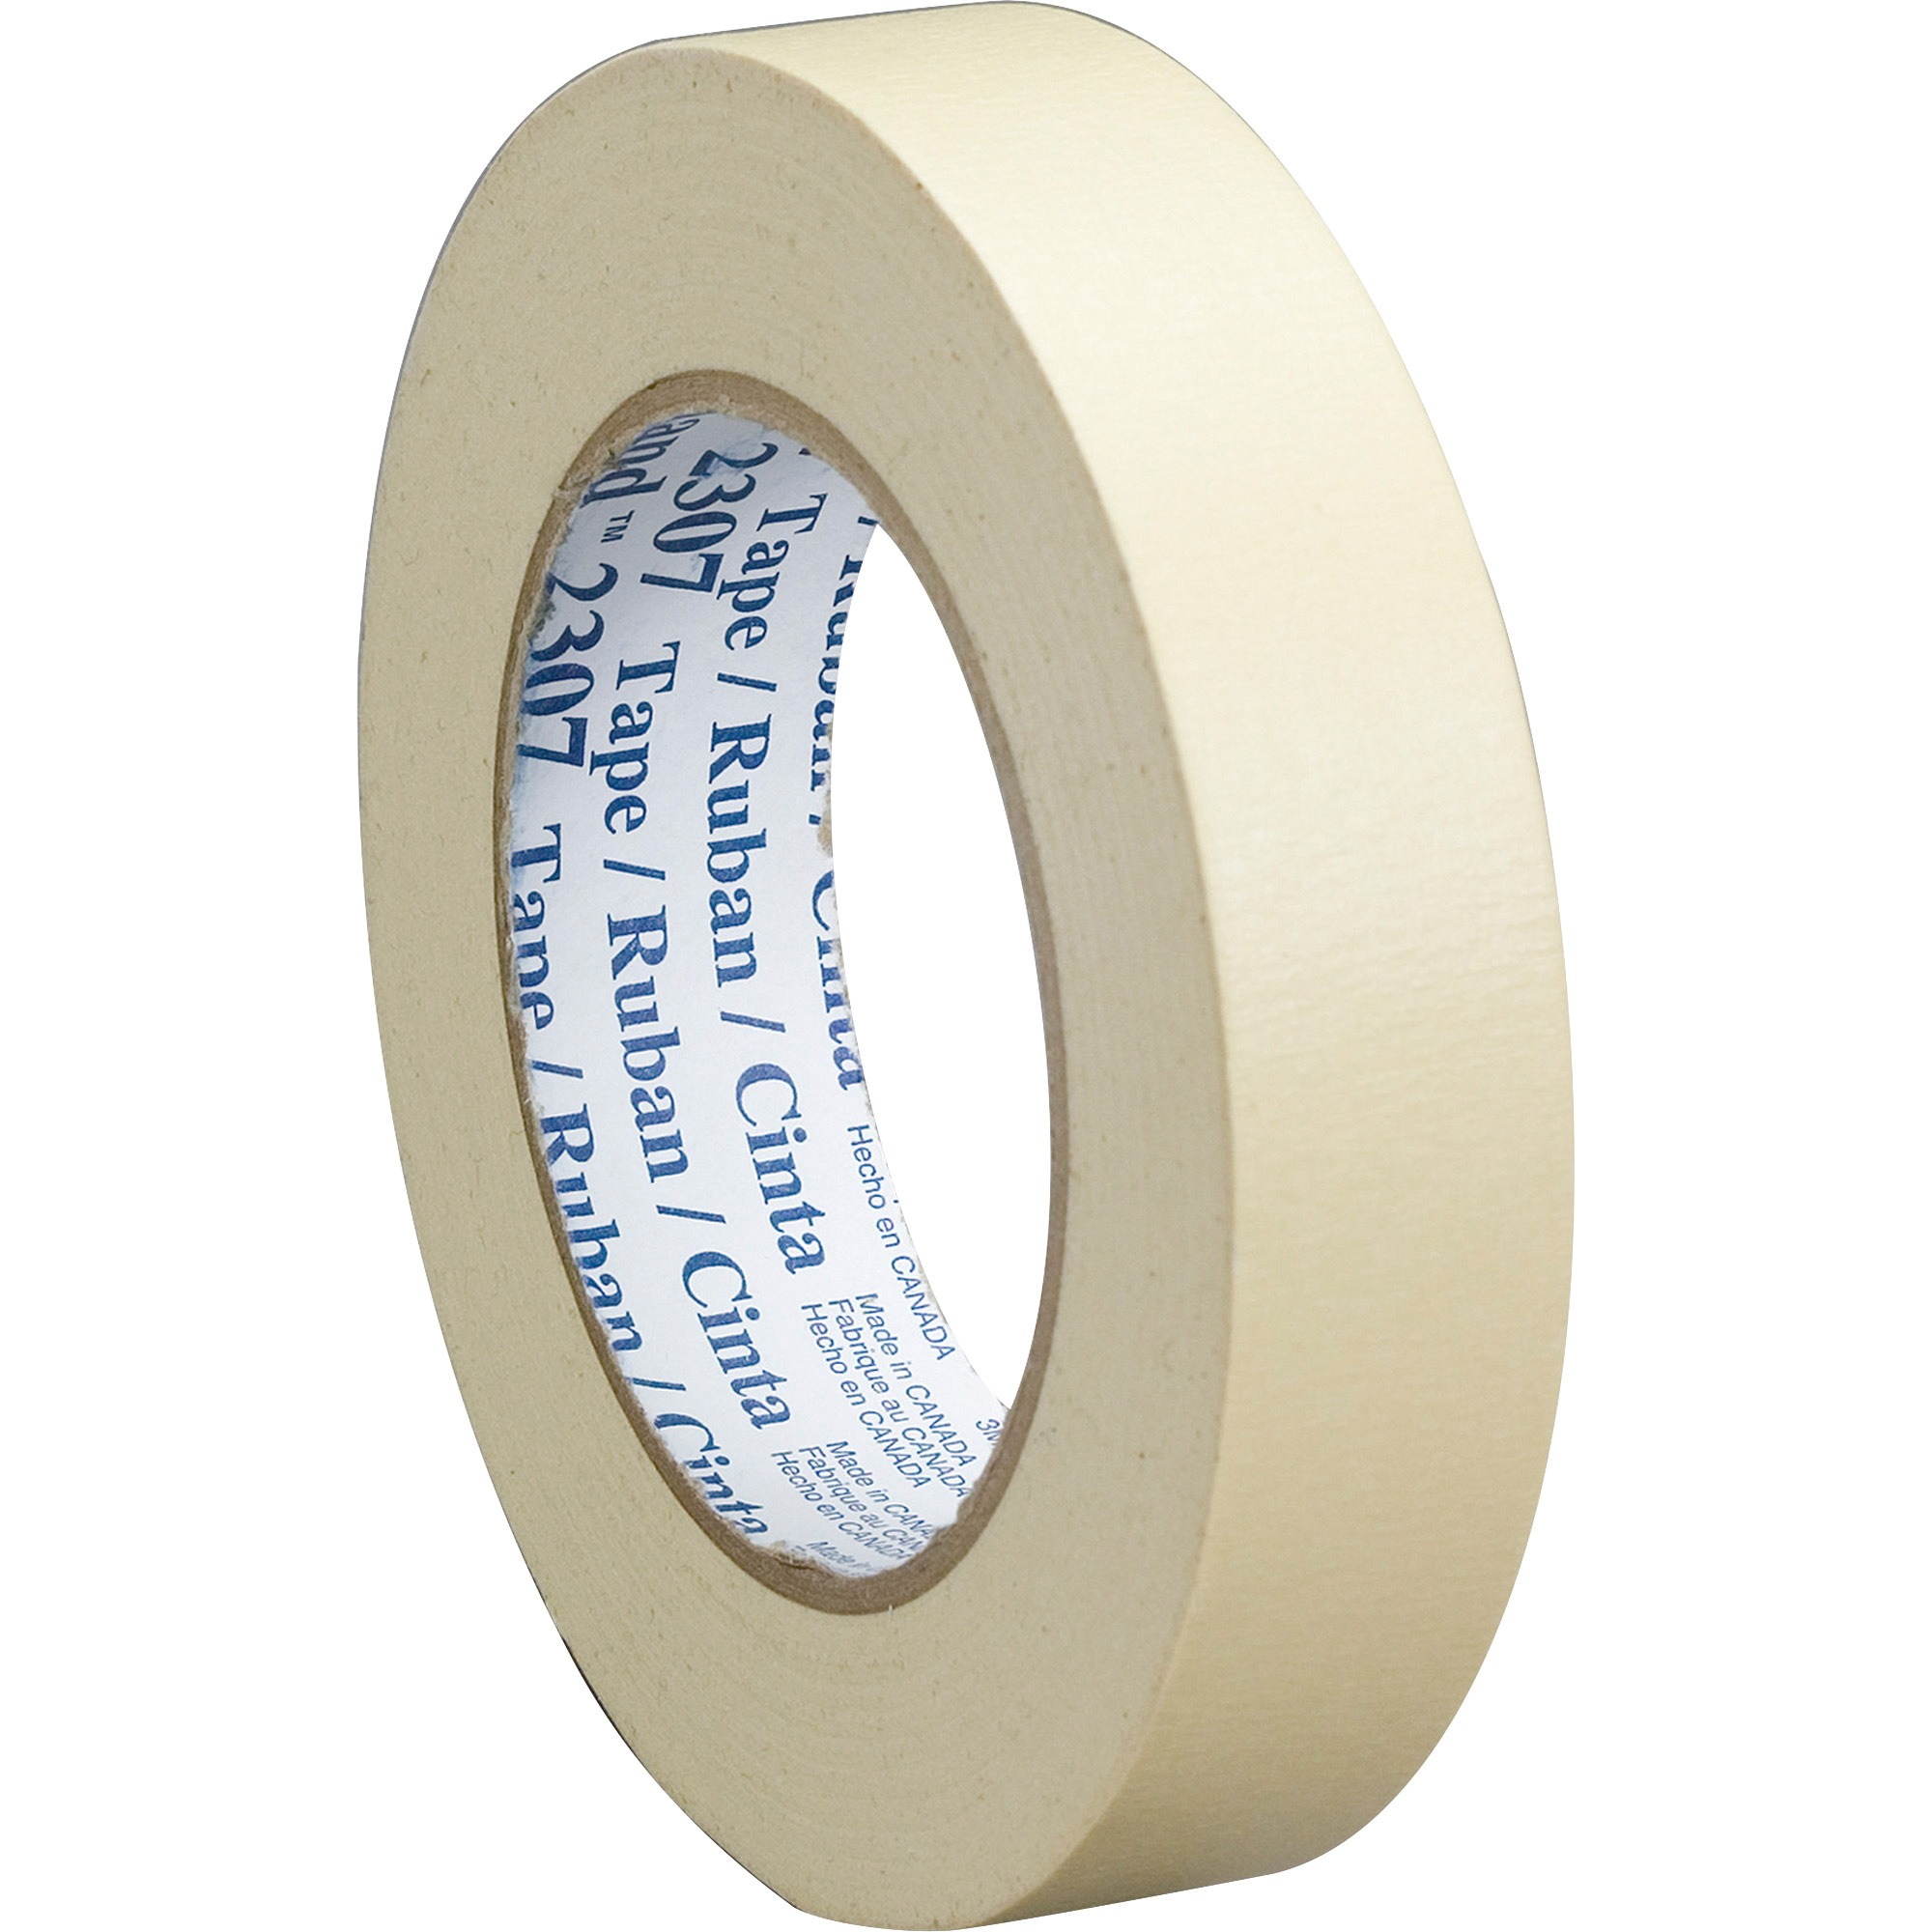 3M 2307 General Purpose Masking Tape Rolls, Tan, 24 / Carton (Quantity)